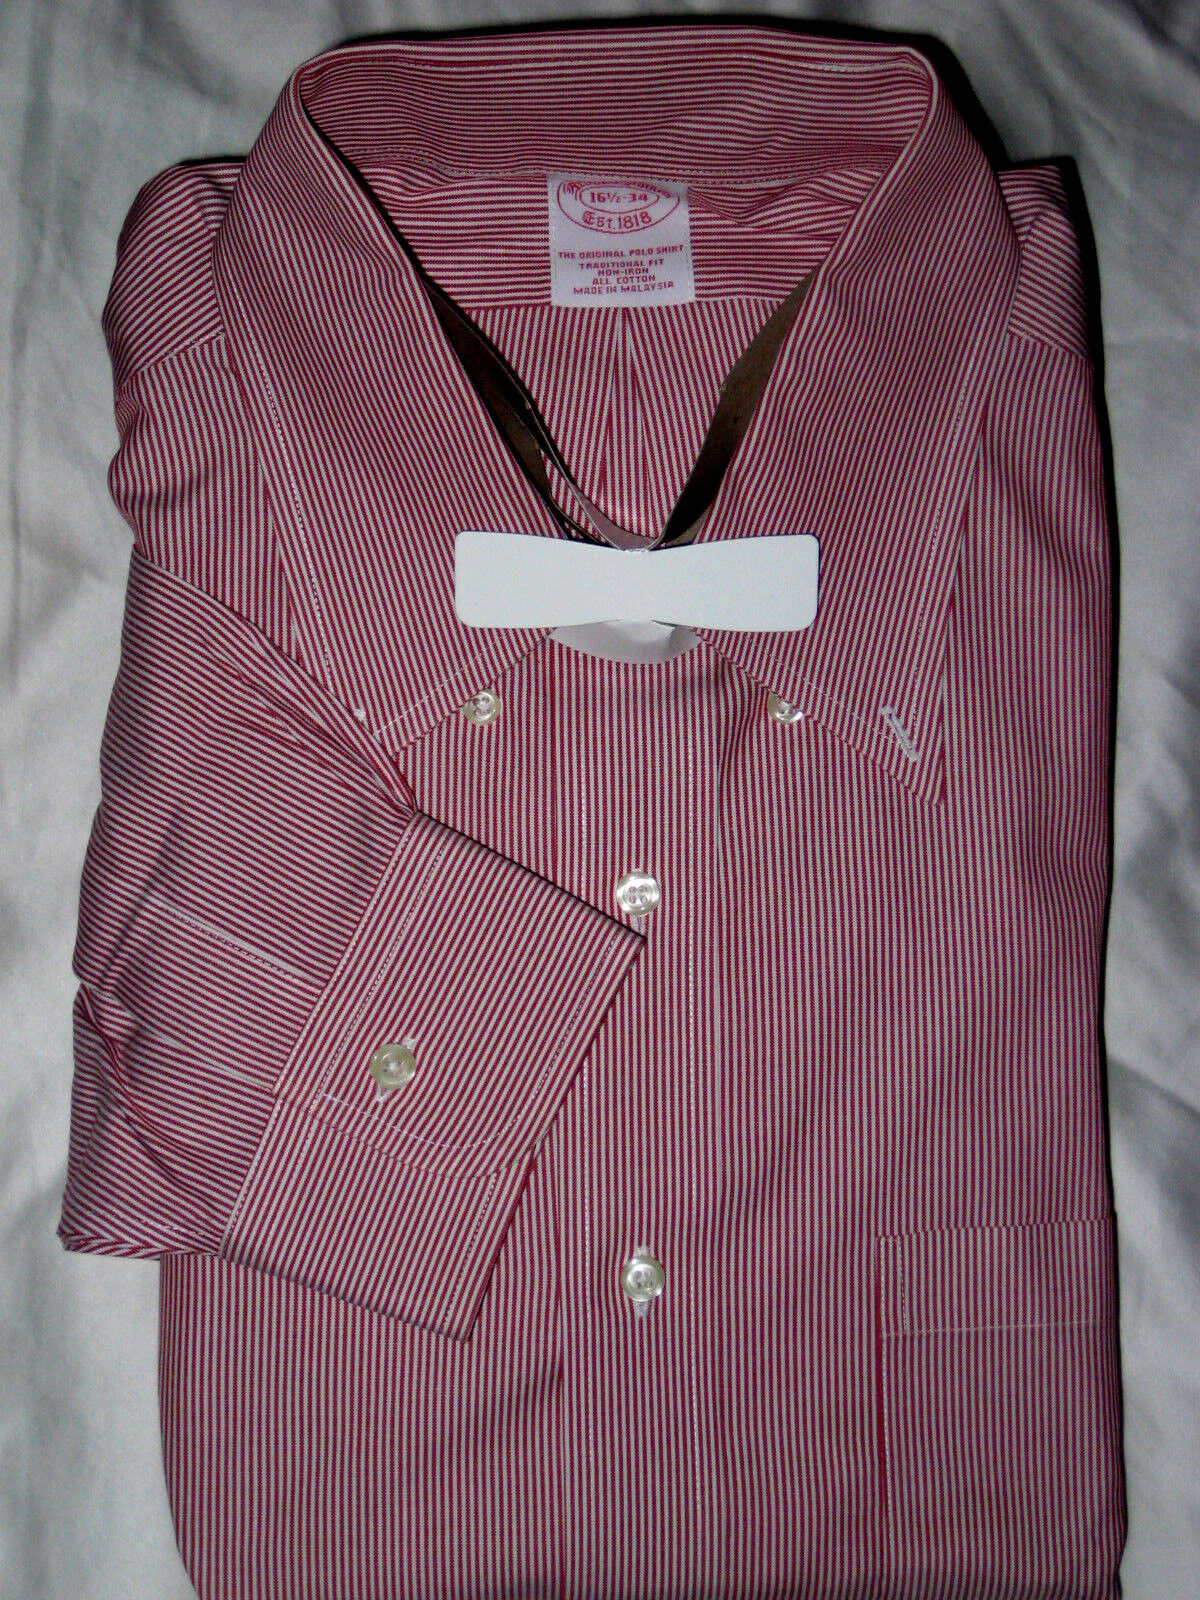 BROOKS BROTHERS  NON-IRON TRAD FIT rot Weiß DRESS SHIRT-NWOT-16.5  34